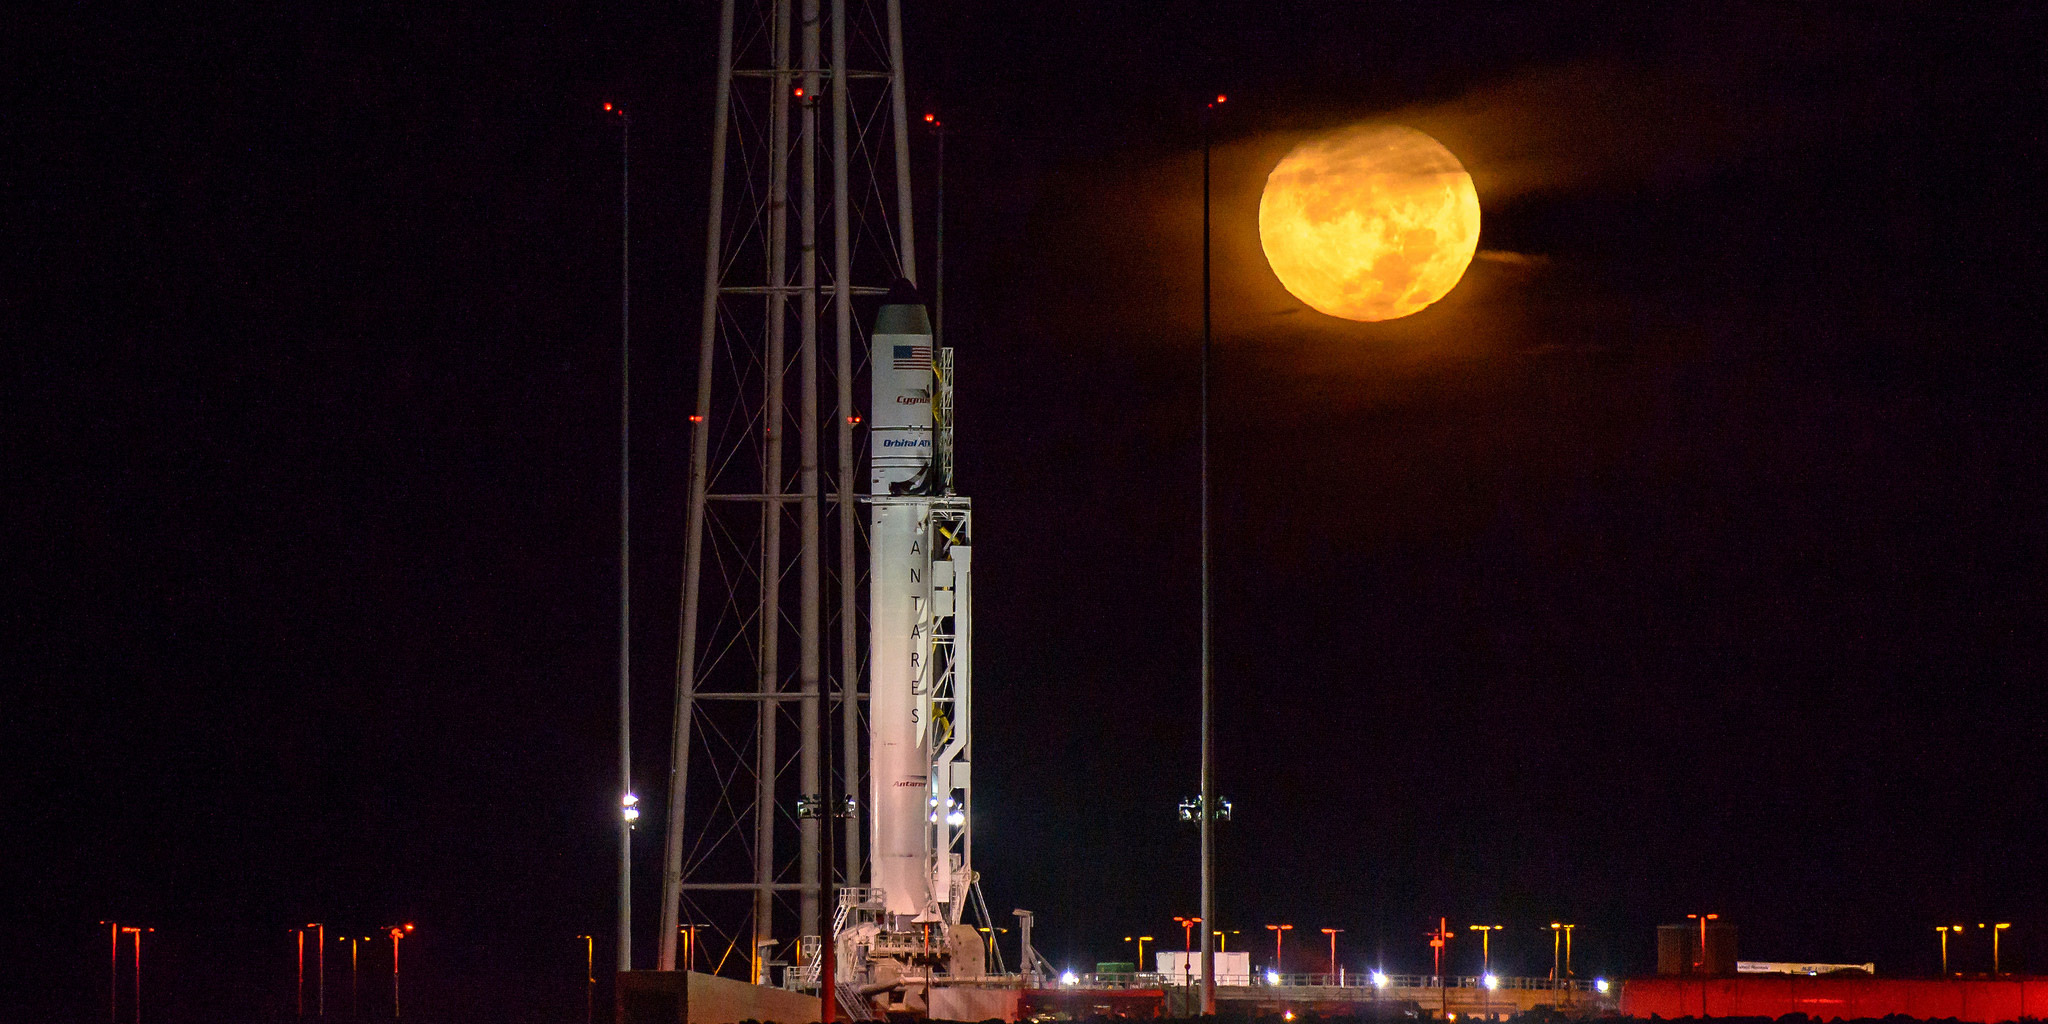 The Orbital ATK Antares rocket before launch, October 2016